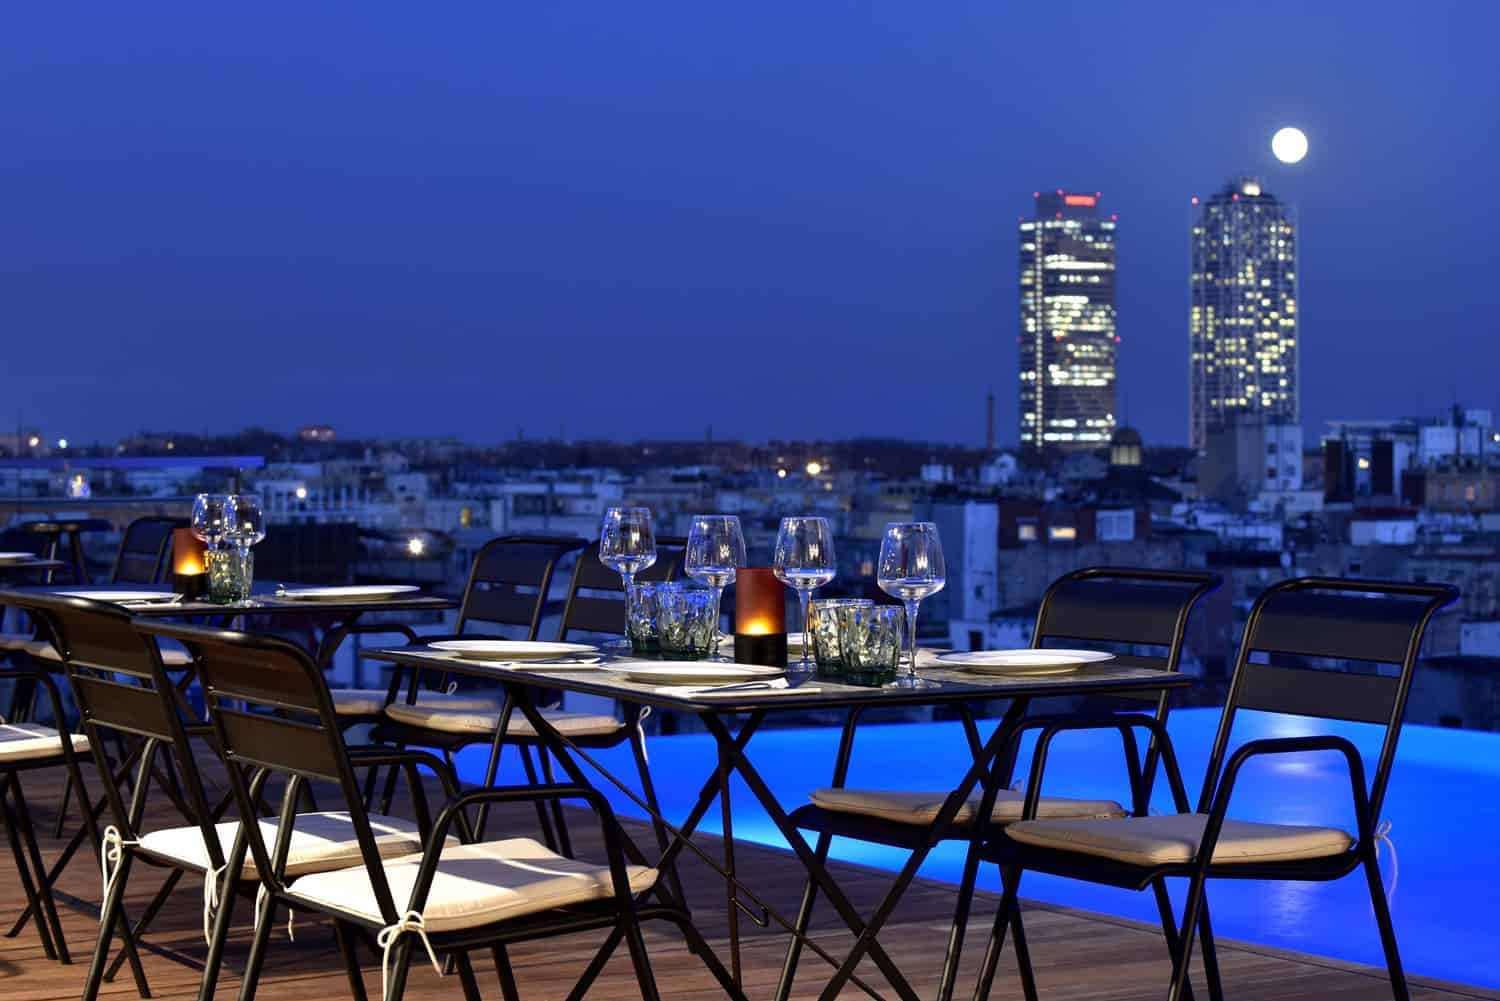 Enjoy a candlelit dinner as the sun goes down on Grand Hotel Central's rooftop terrace. Image credit:    Grand Hotel Central   /Fair Use